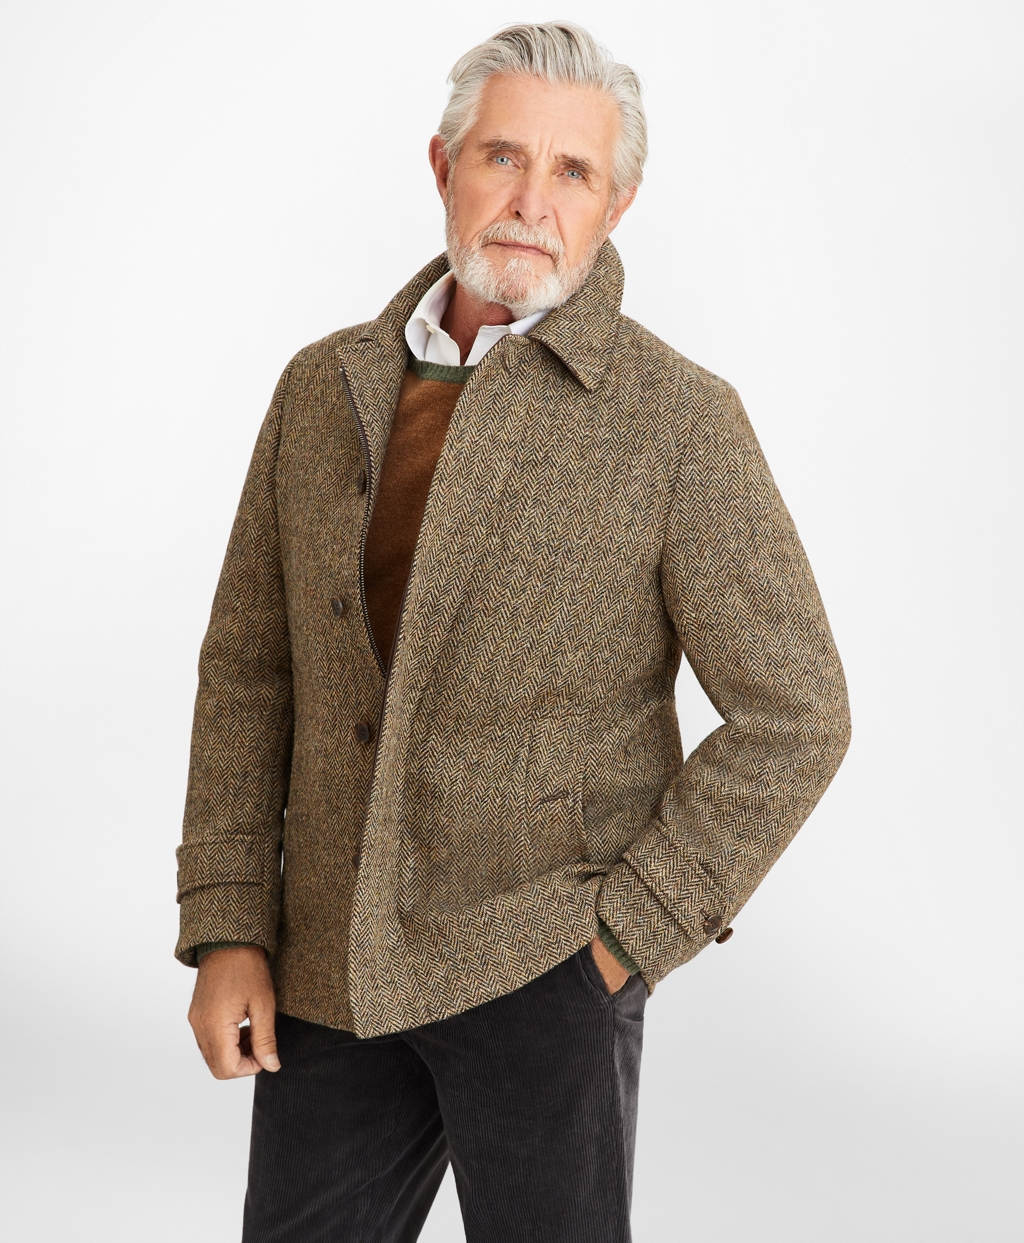 60s 70s Men's Jackets & Sweaters Brooks Brothers Mens Harris Tweed Walking Coat $698.60 AT vintagedancer.com